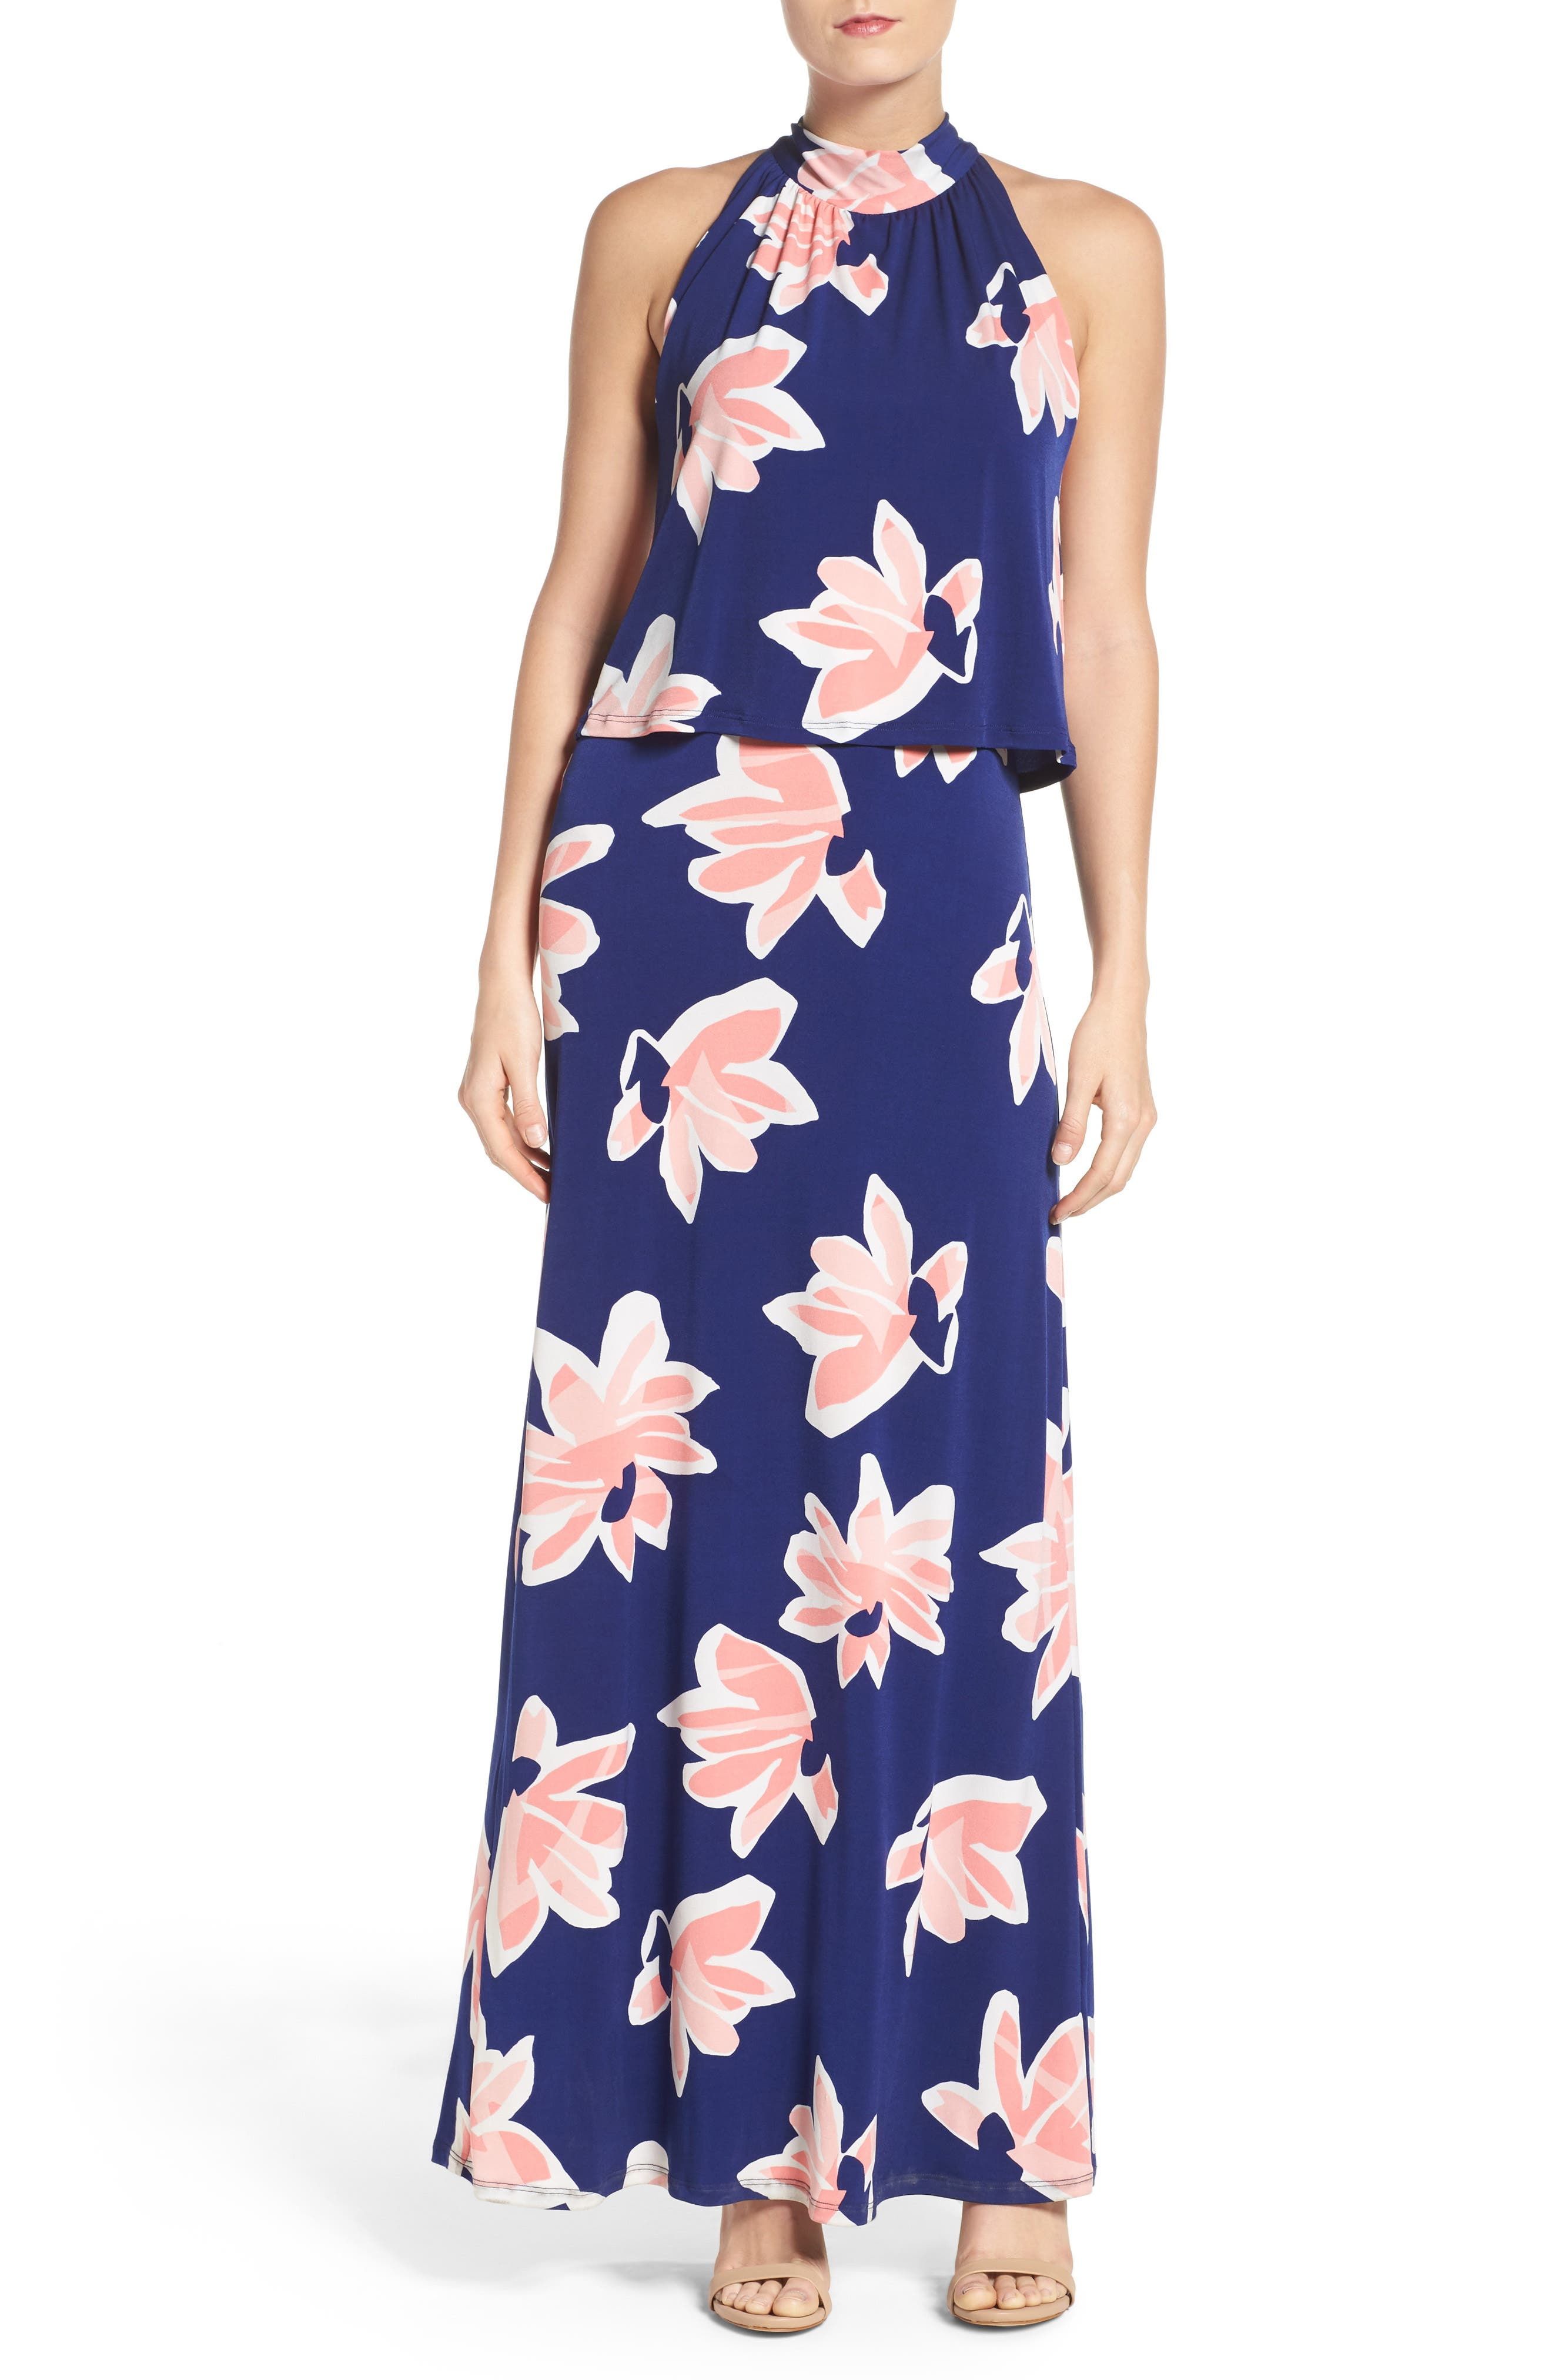 Alternate Image 1 Selected - Leota 'Syler' Popover Jersey Maxi Dress